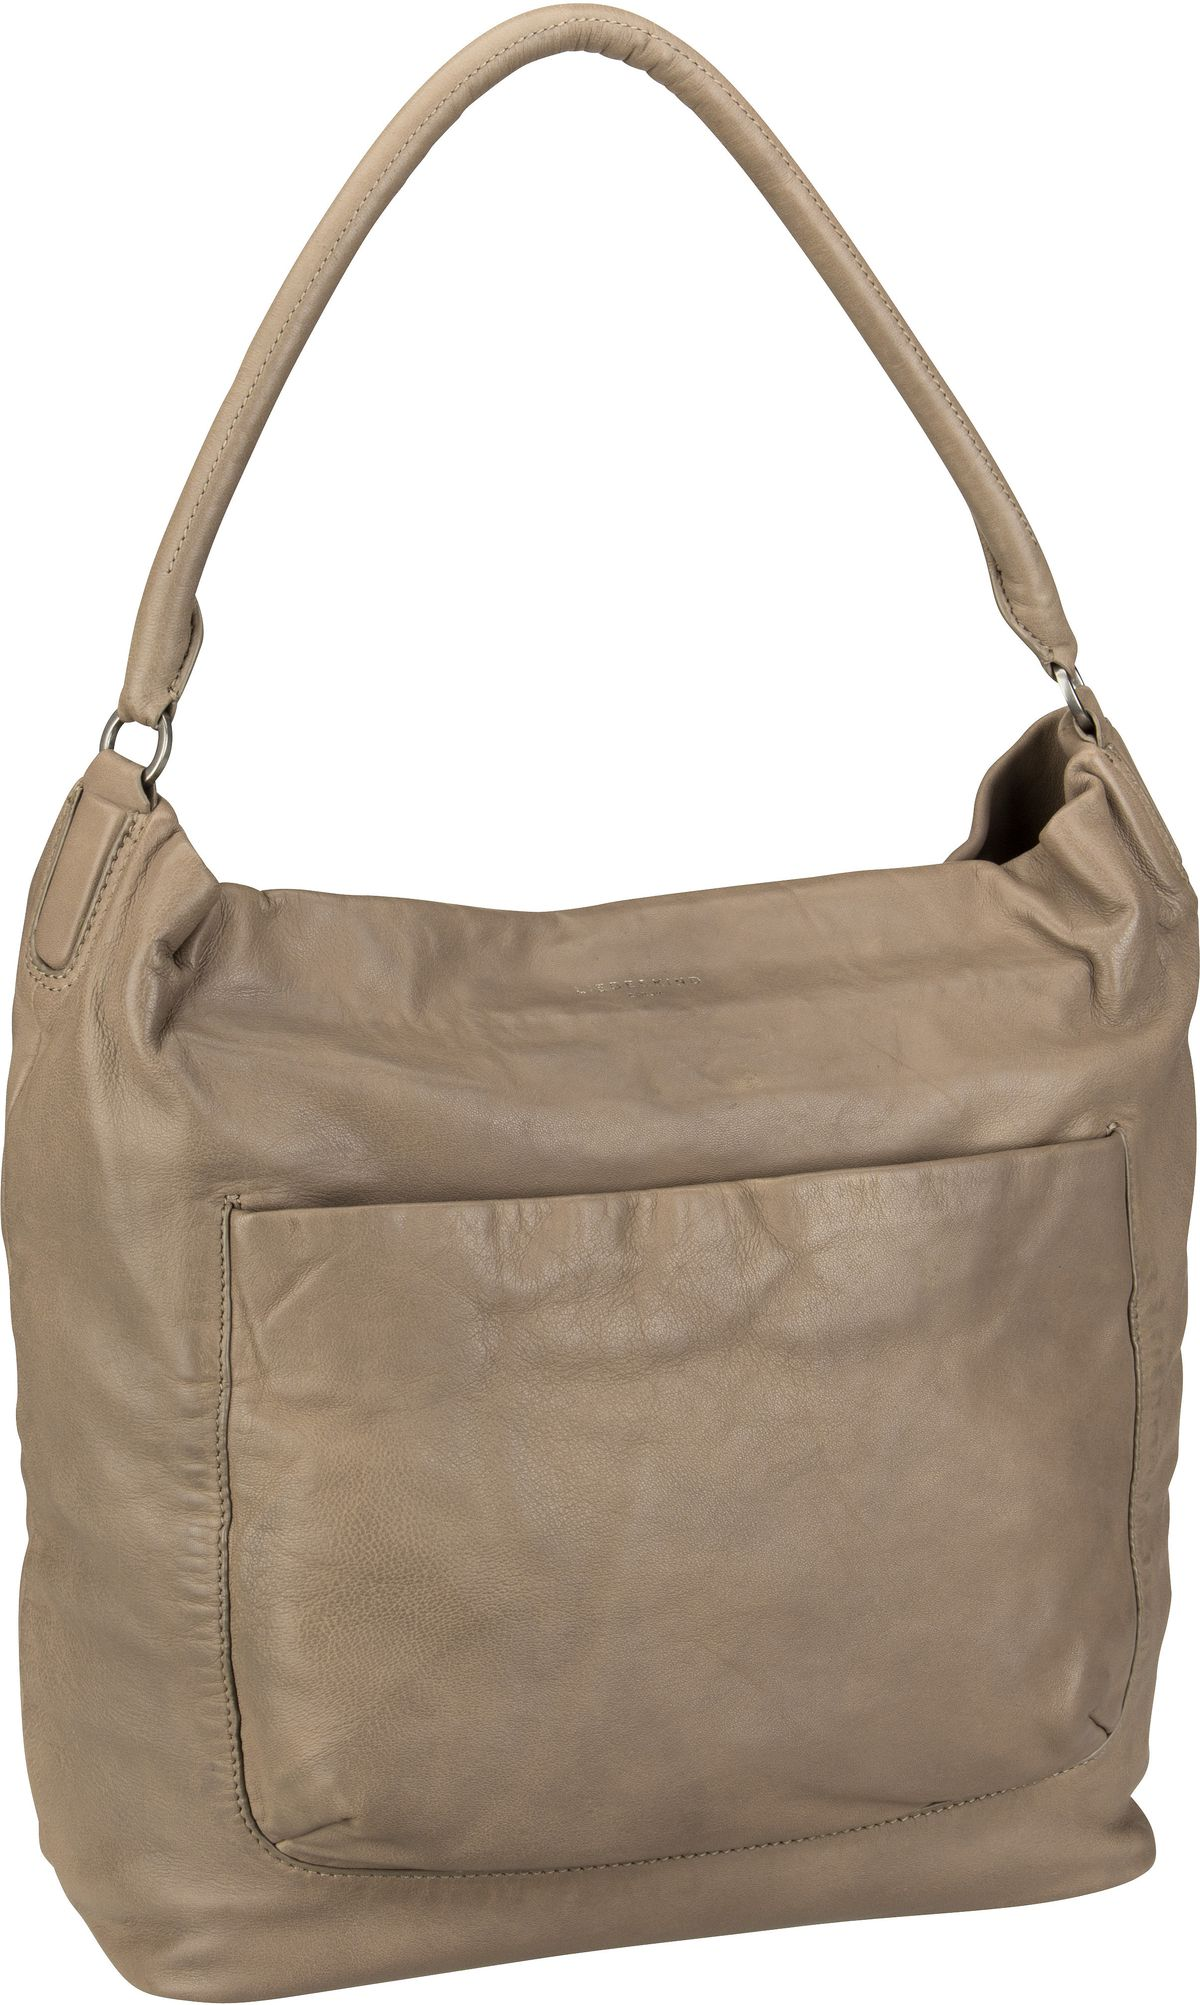 Berlin Handtasche Ever Hobo L Taupe